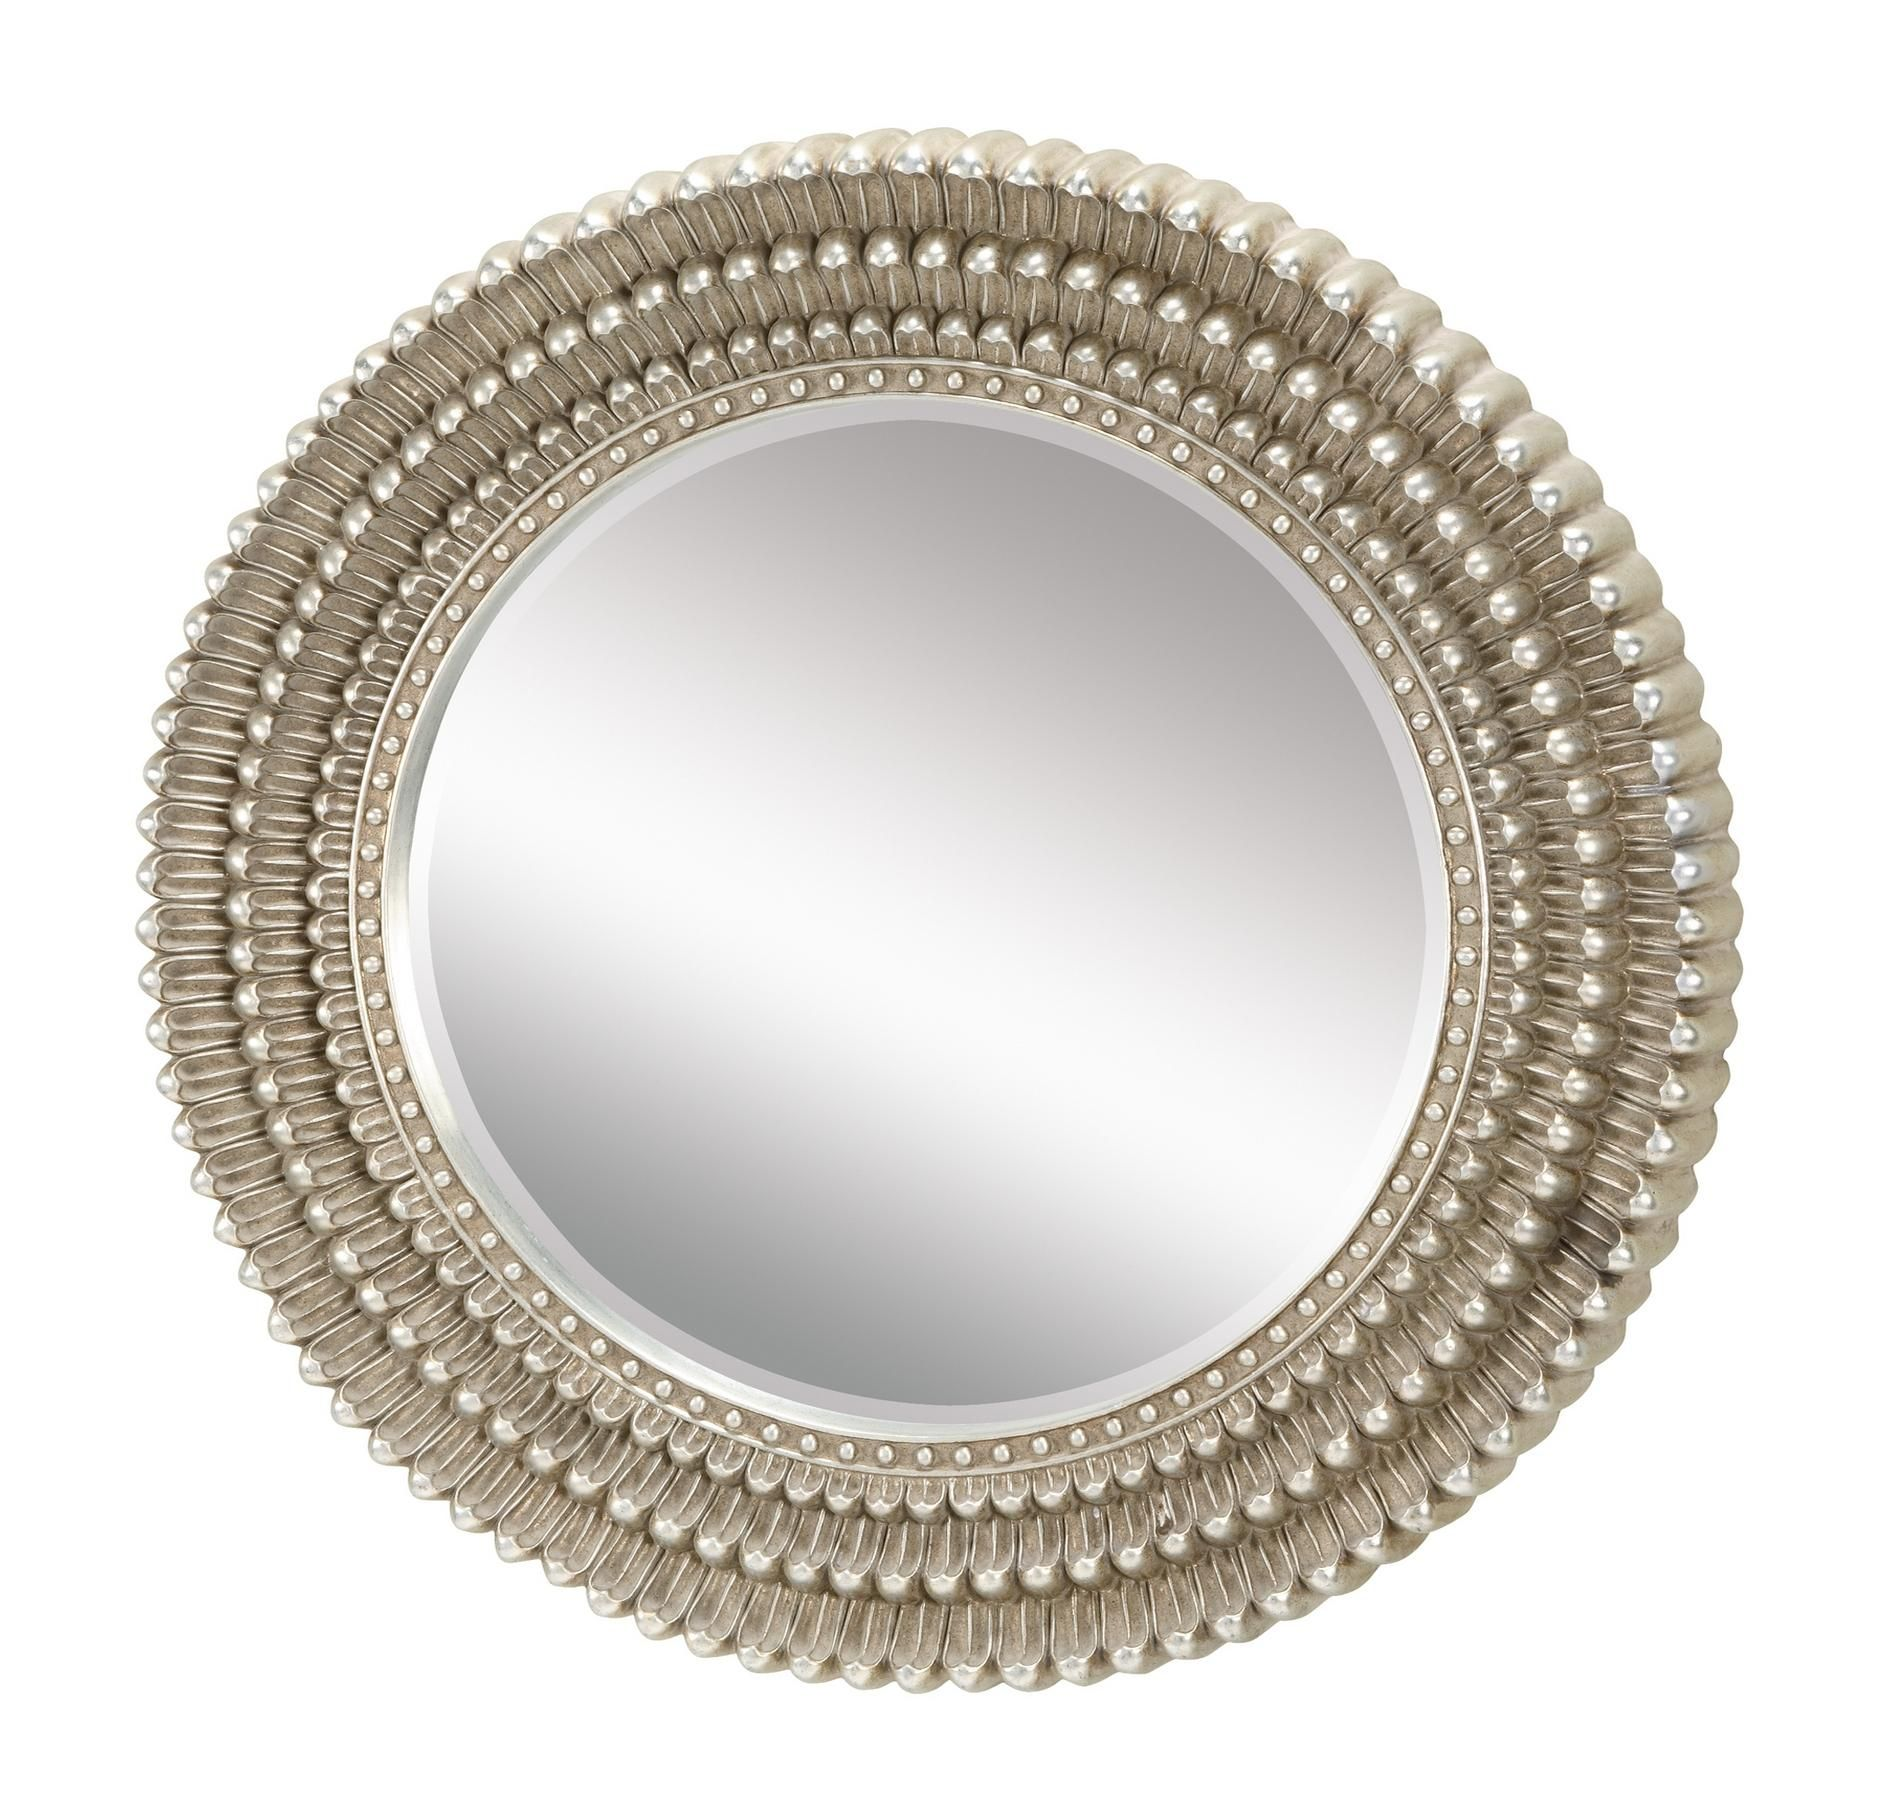 Sterling Industries 6050409 Dahila Mirror in Antique Silver Leaf in ...